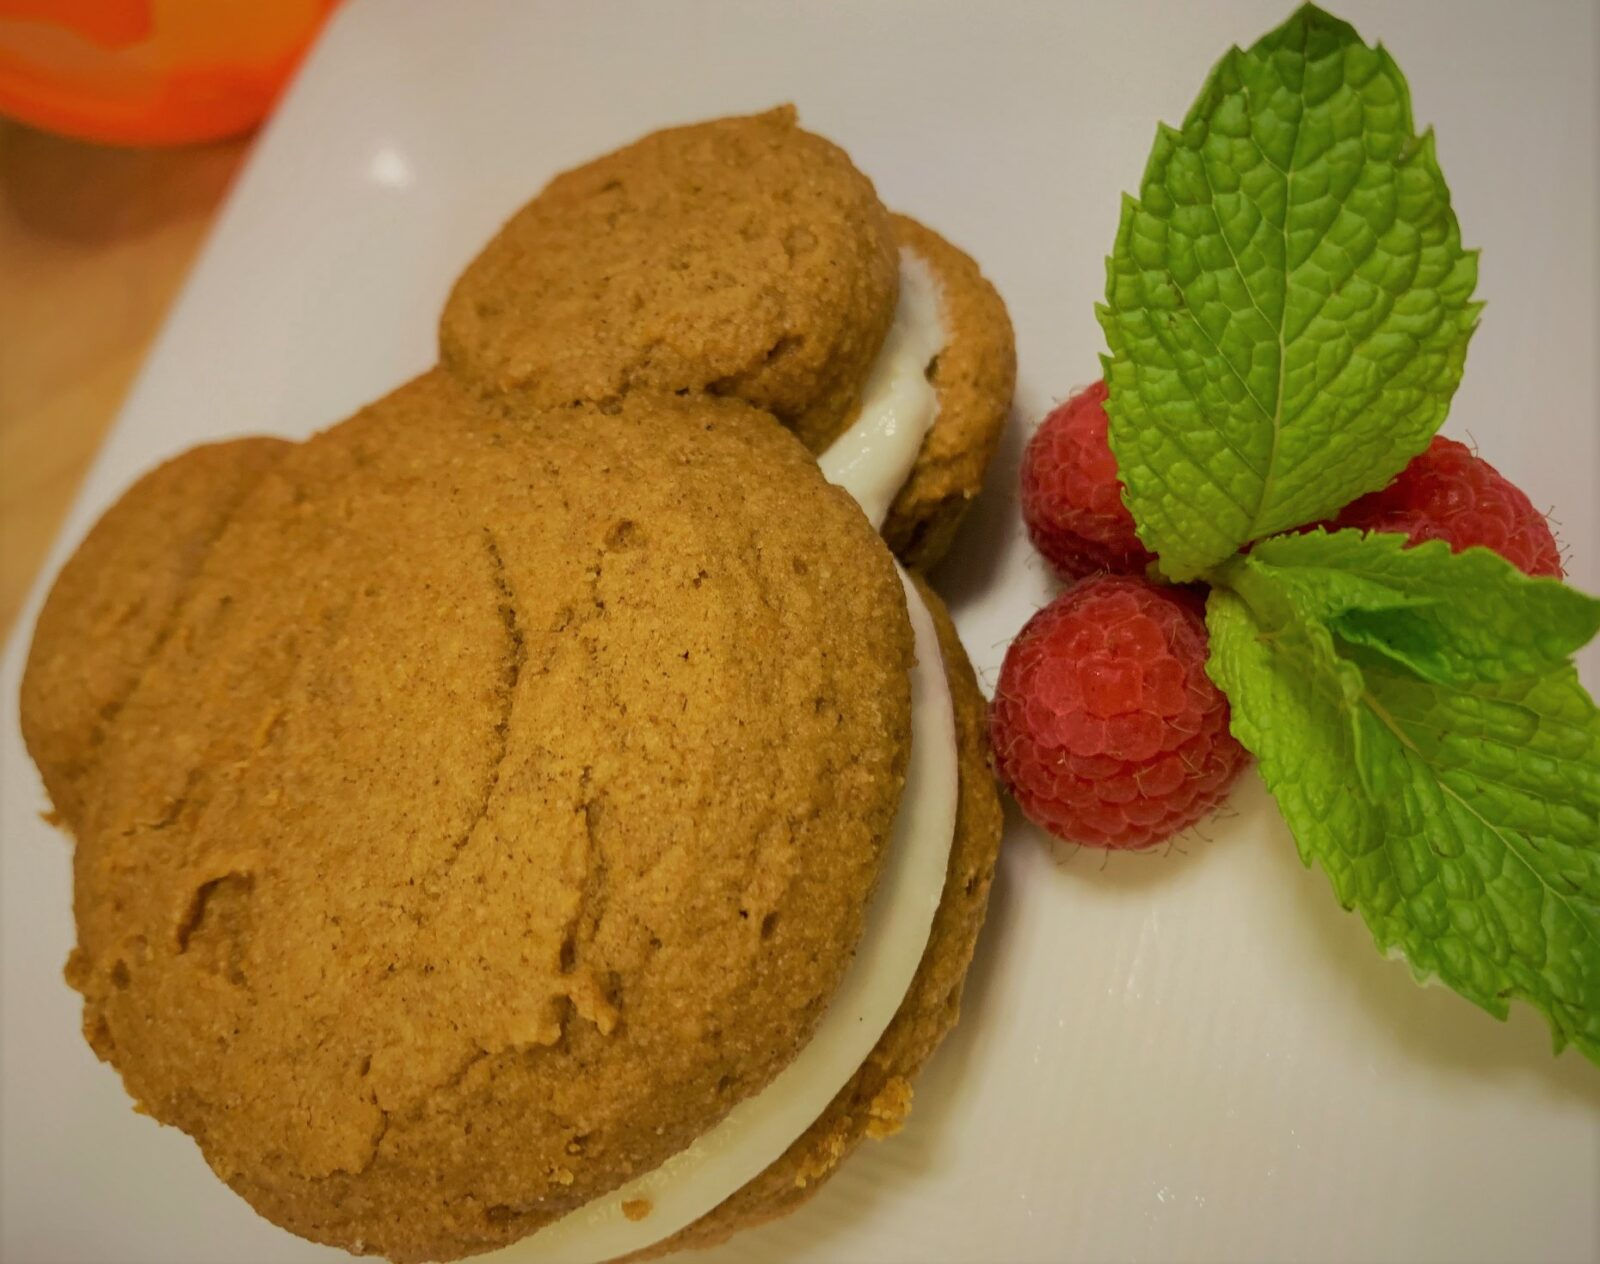 Our completed Pumpkin Mickey Whoopie Pies